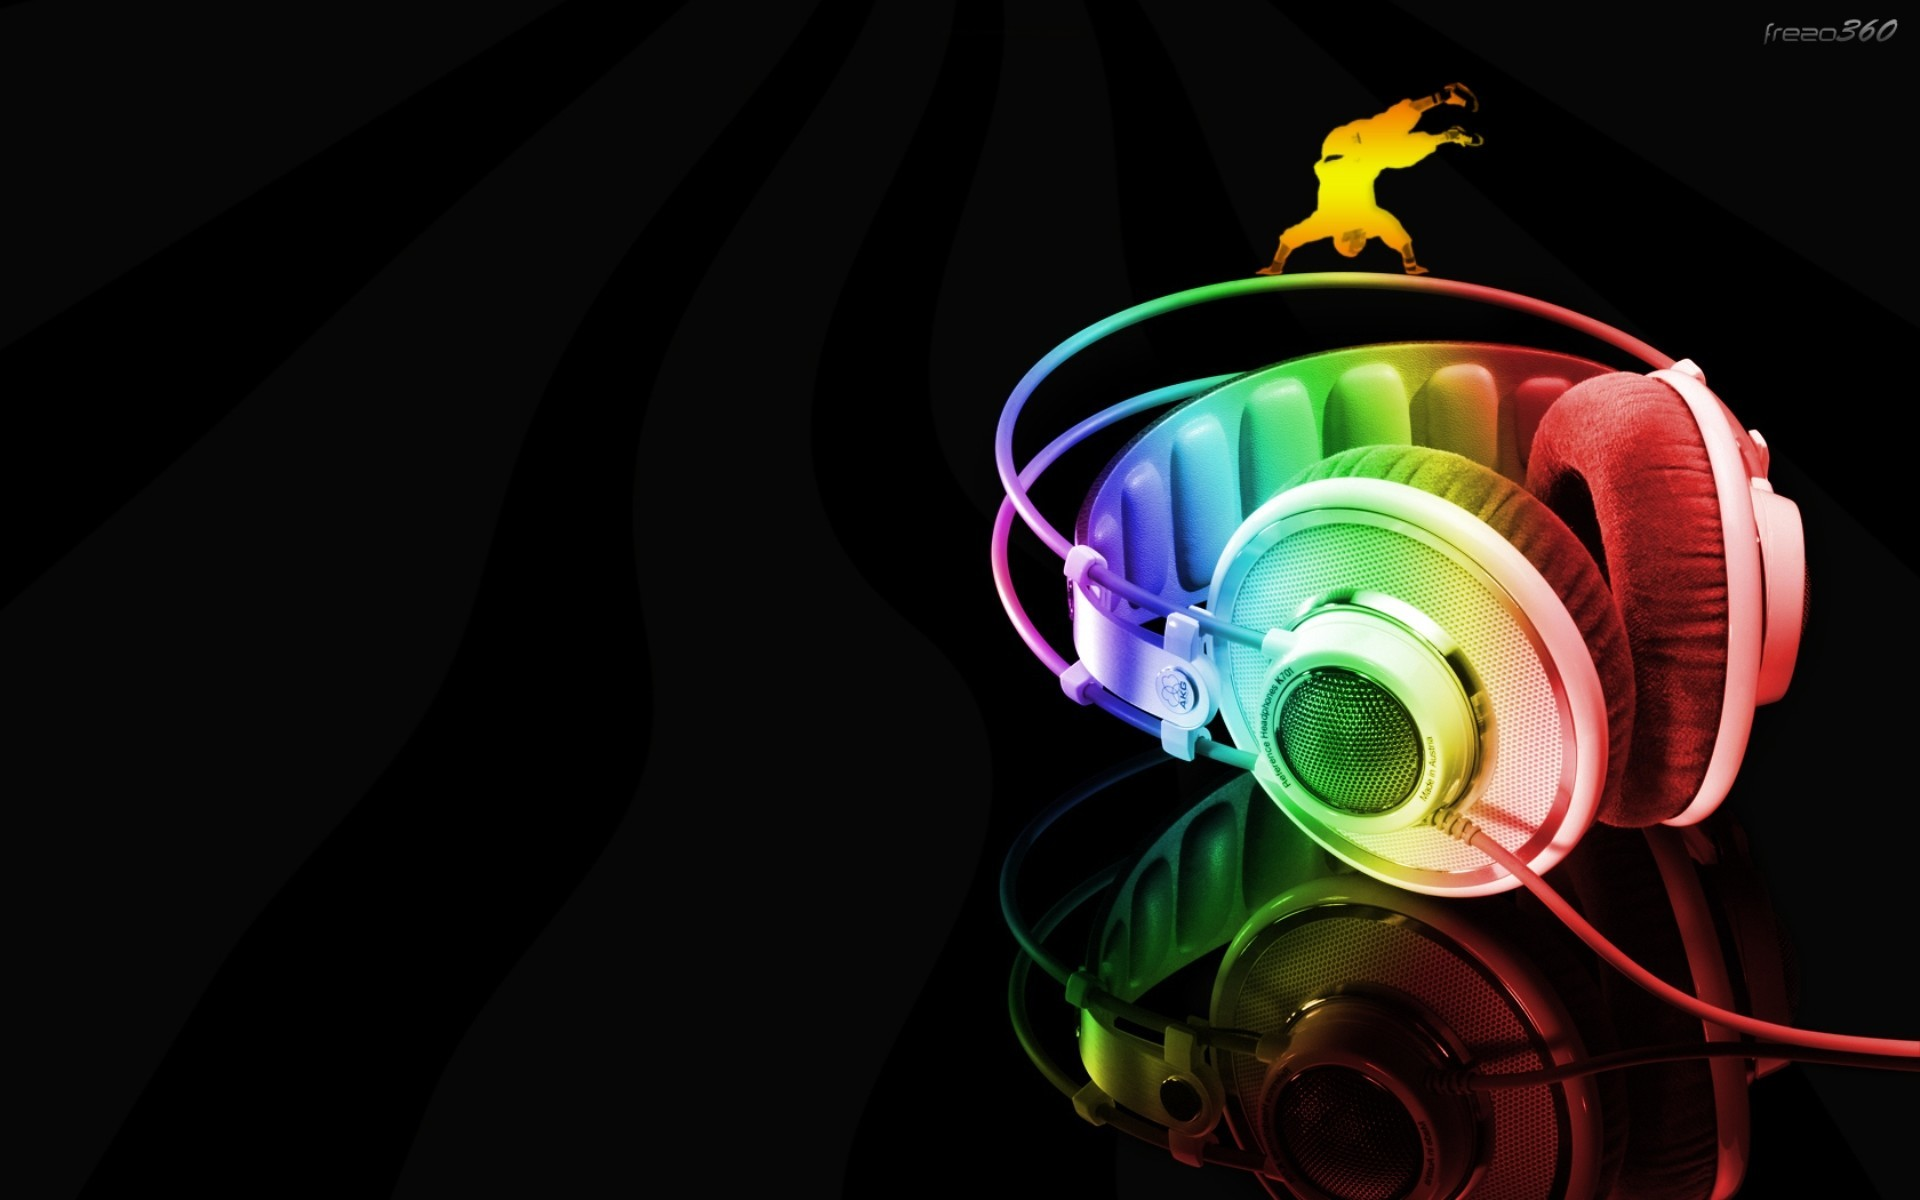 Cool Music Background Wallpapers 62 Pictures